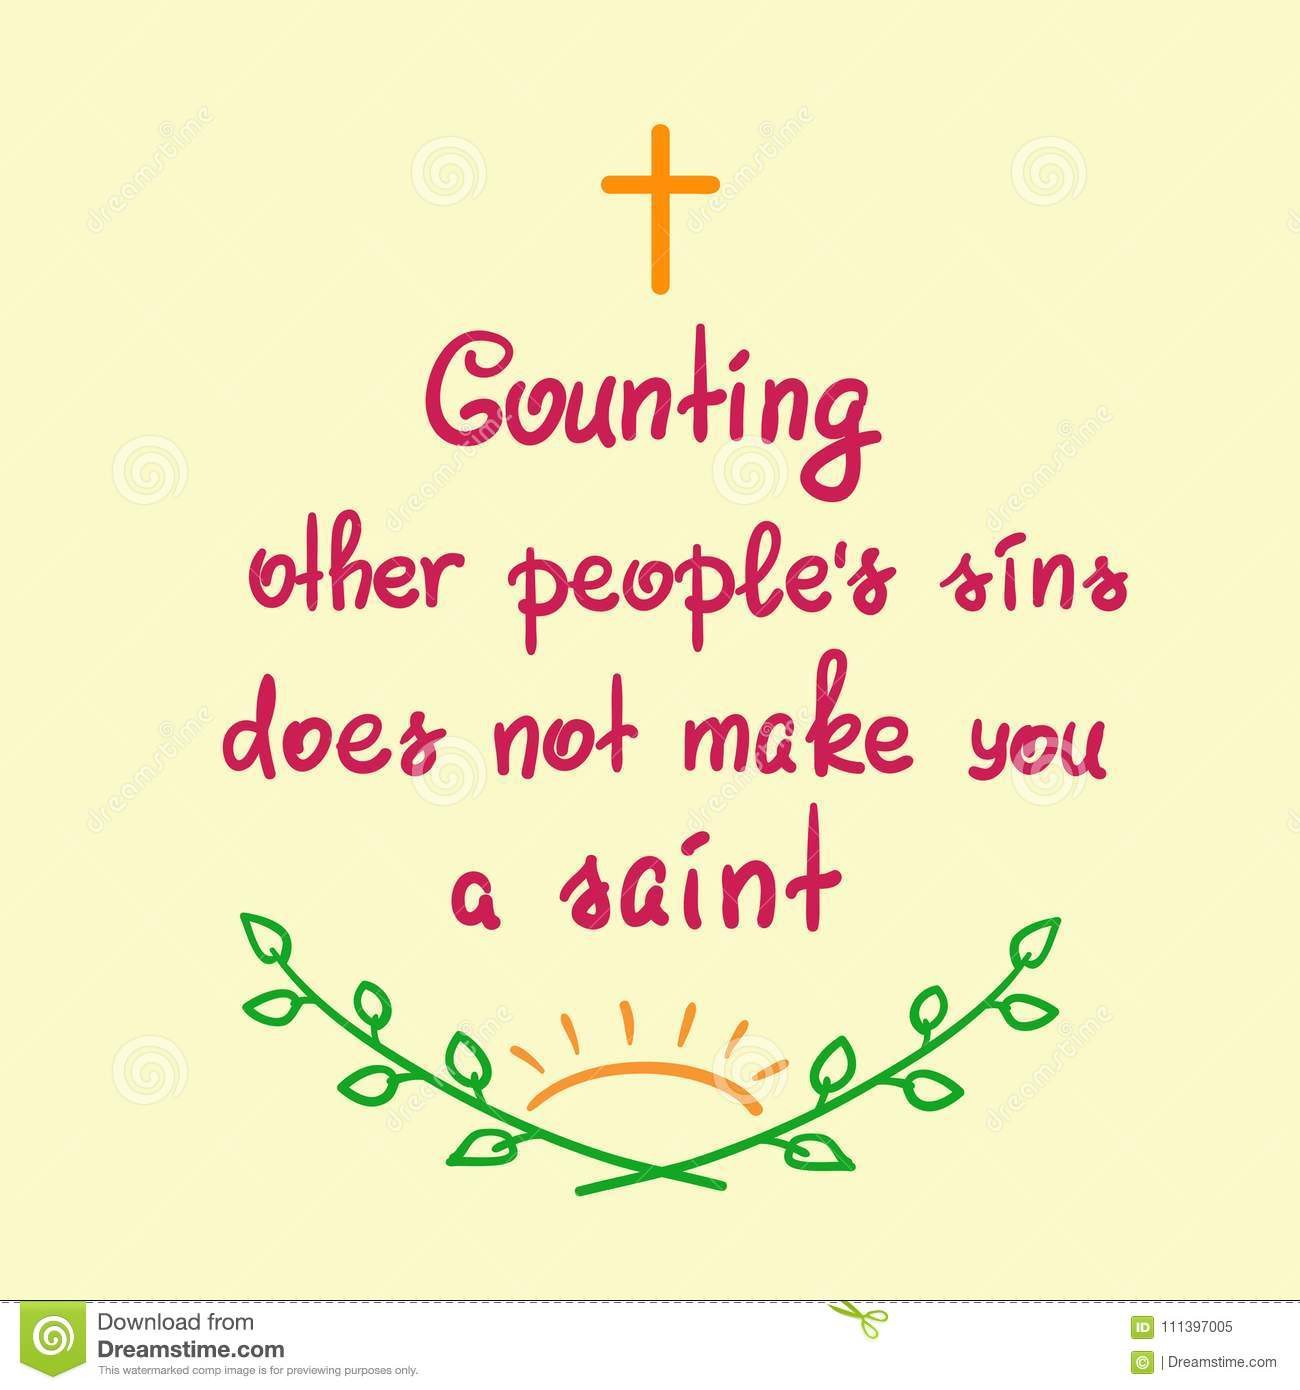 counting-other-people-s-sins-does-not-ma